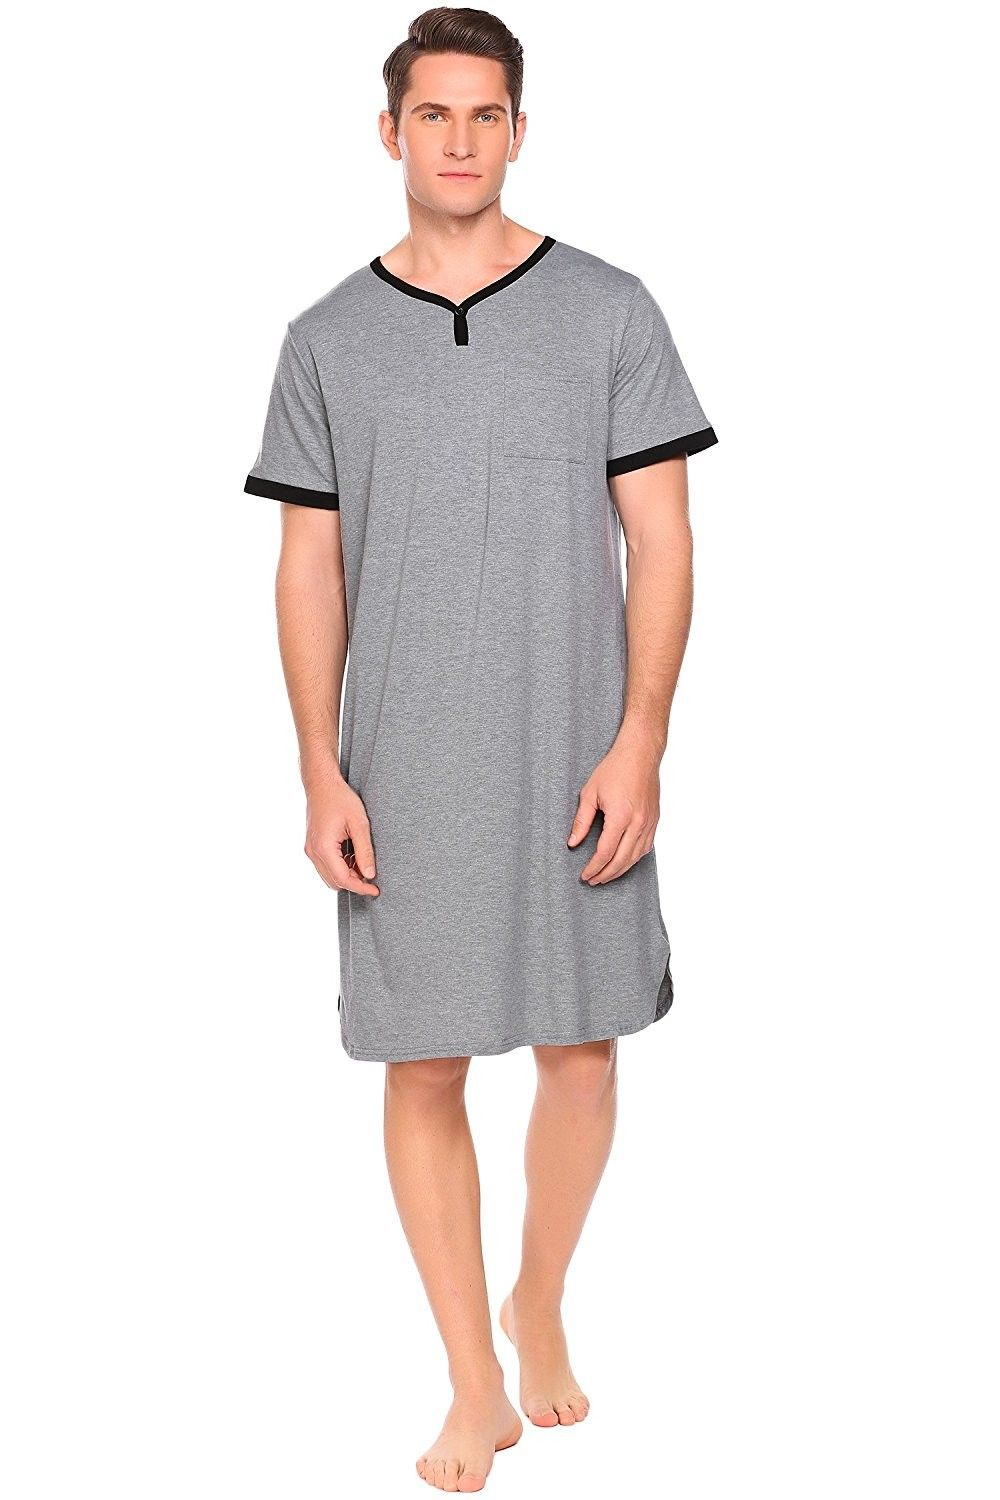 e3cf1441cb Men s Nightshirt Cotton Nightwear Comfy Big Tall Short Sleeve Henley Sleep  Shirt - A-grey - CP1809NLG9U